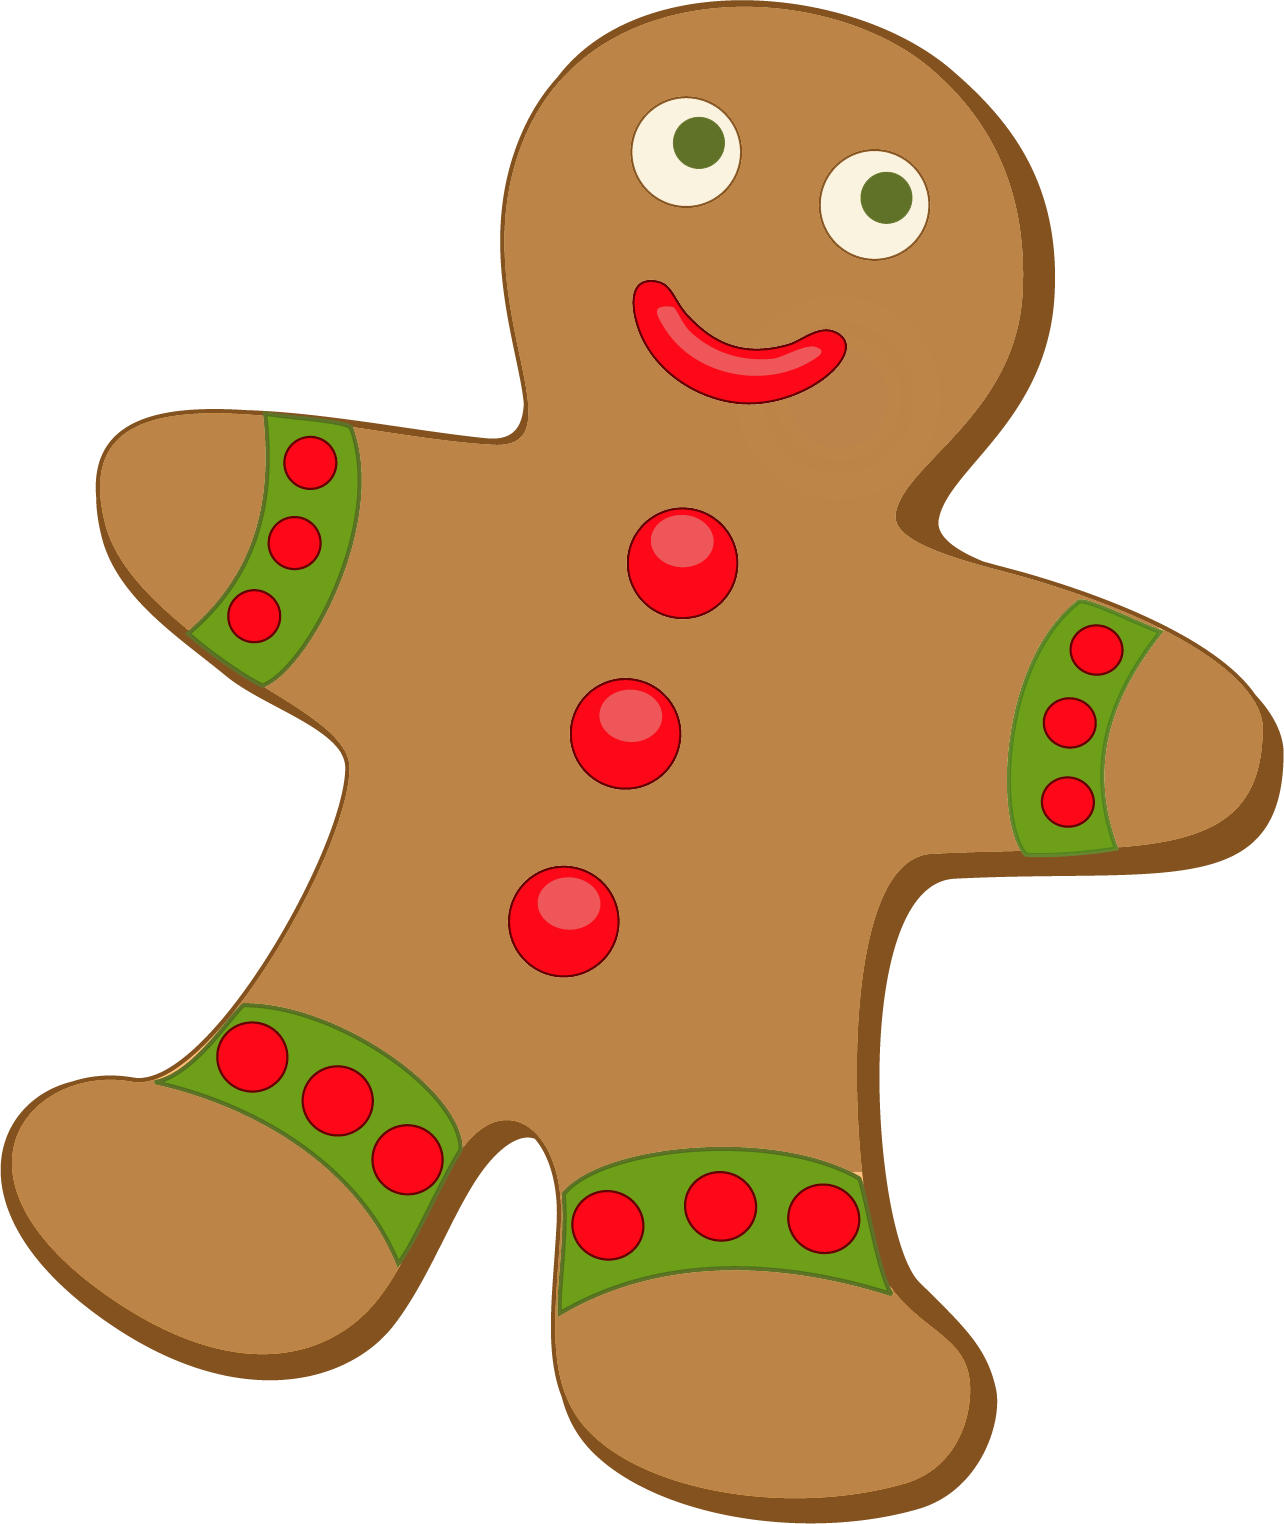 free gingerbread house clipart - photo #35